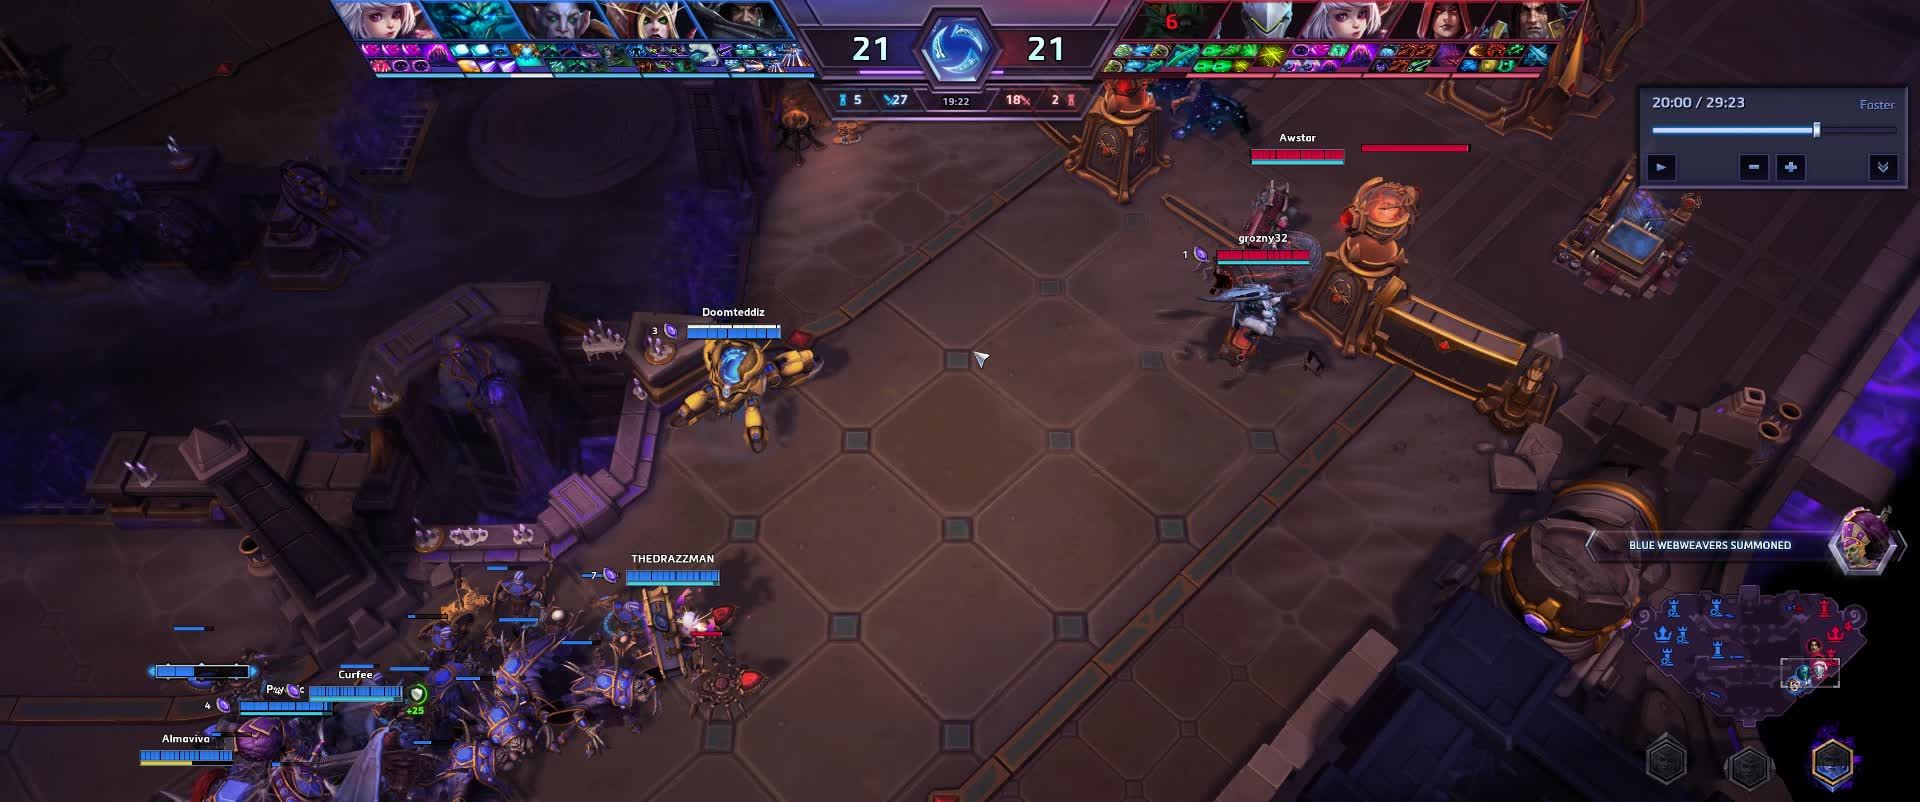 heroesofthestorm, Heroes of the Storm 2018.11.15 - 21.31.18.03 GIFs